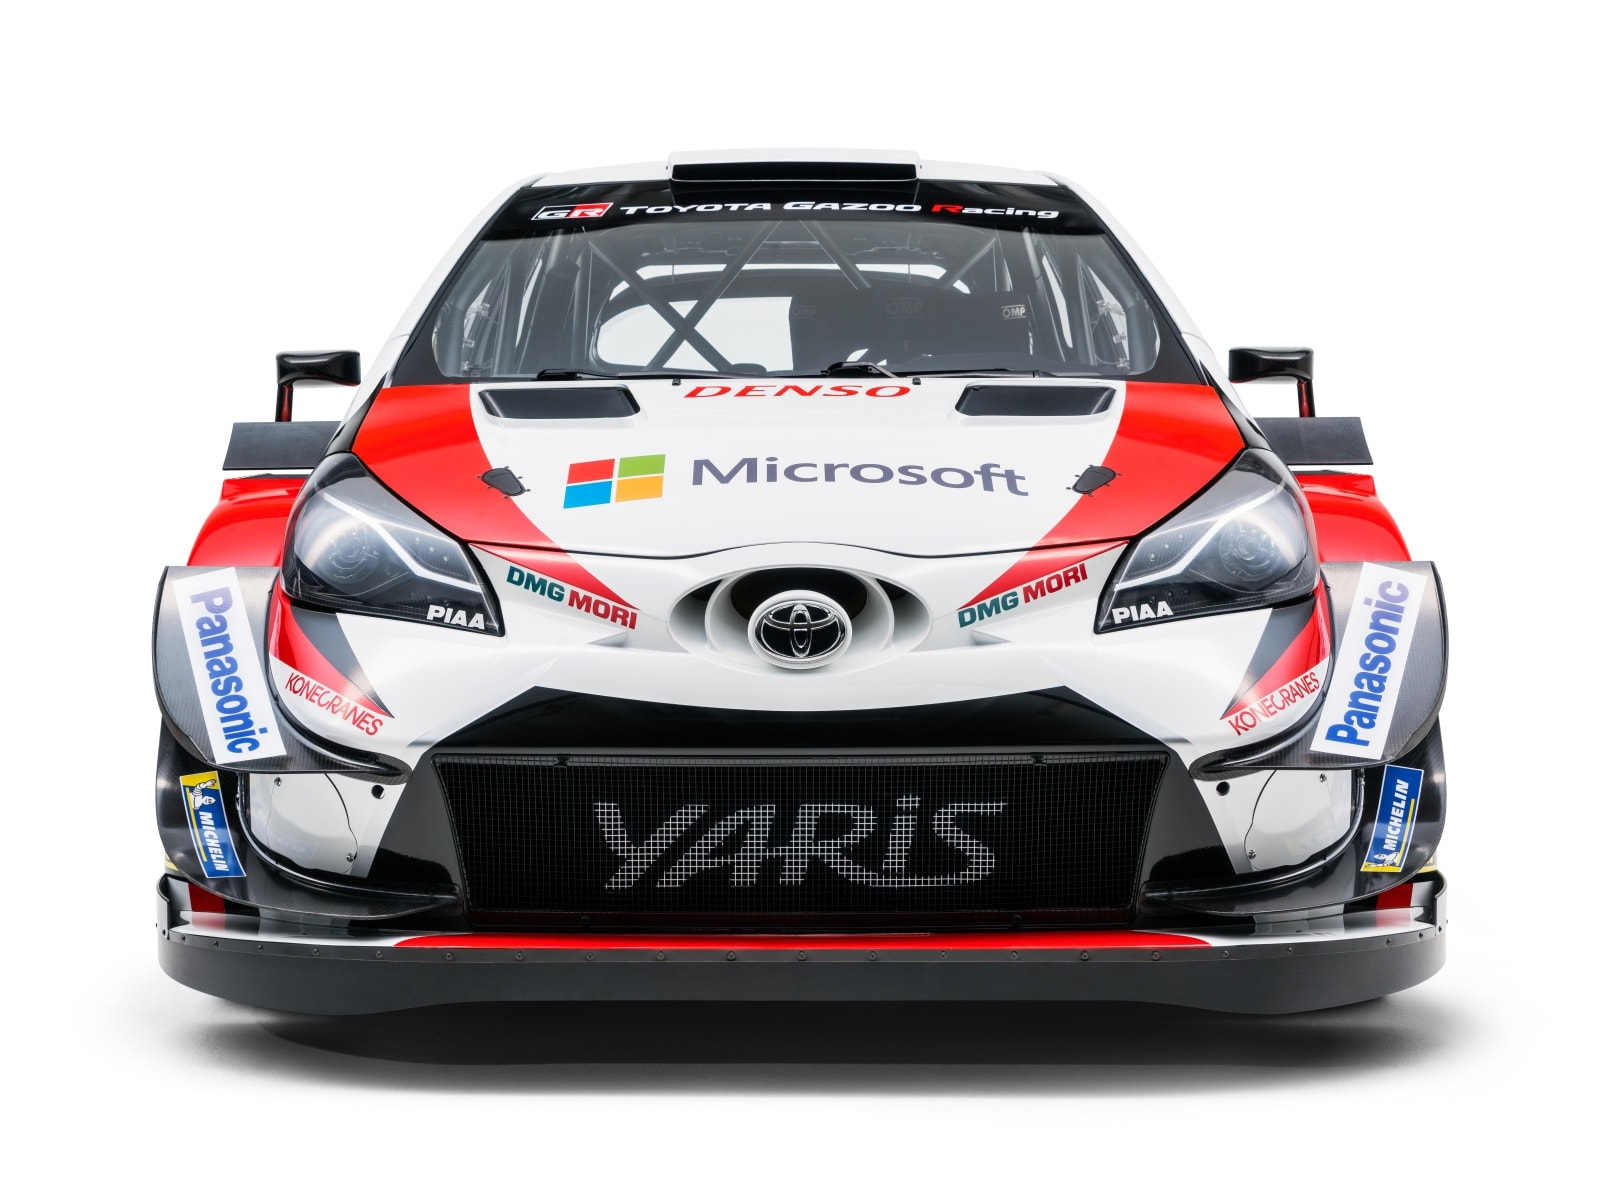 toyota yaris wrc 2018 le prime foto ufficiali rally panoramauto. Black Bedroom Furniture Sets. Home Design Ideas